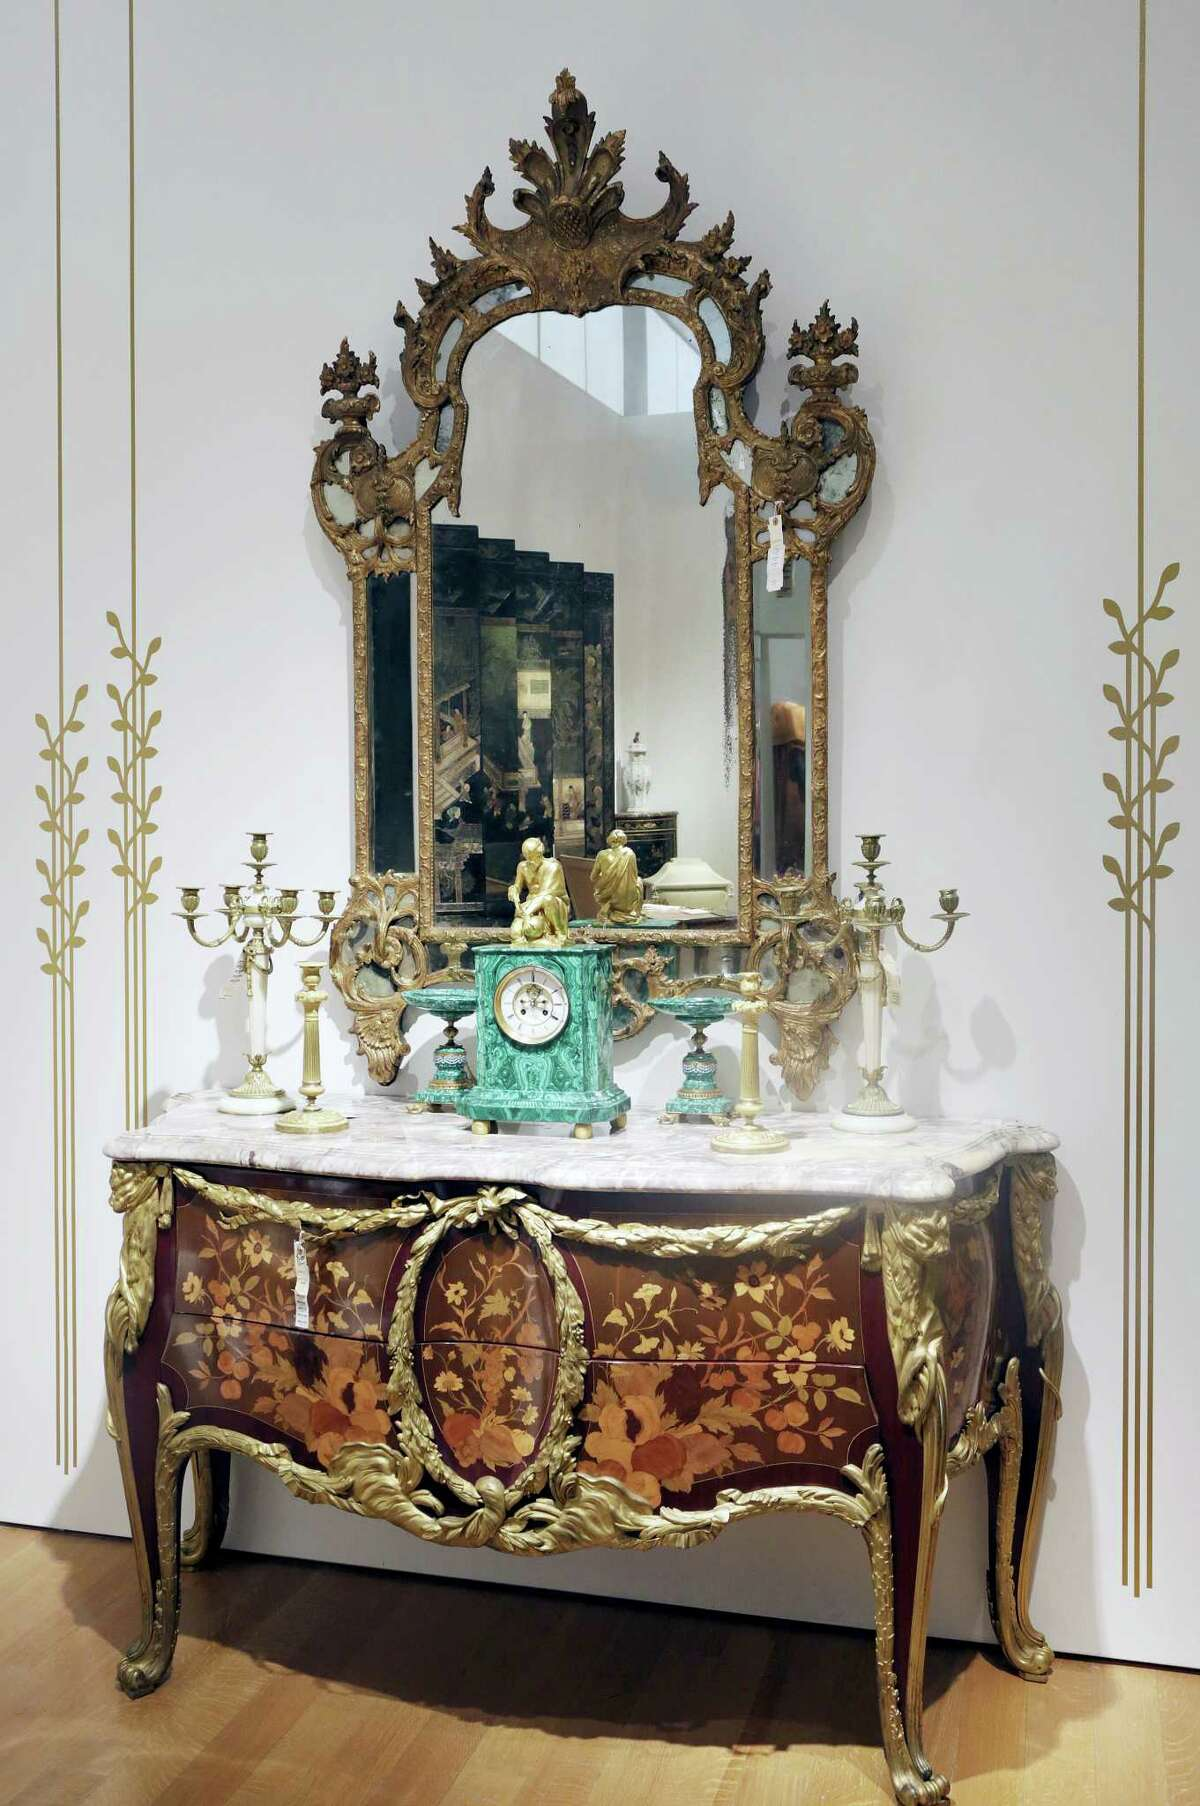 A French chest of drawers, owned by the late comedian Joan Rivers, is displayed at Christie's, Friday, June 17, 2016, in New York. The Private Collection of Joan Rivers has more than 200 lots to be auctioned in a live sale at Christie's on June 22 and about 80 more offered online at Christies.com, starting Thursday through June 23.